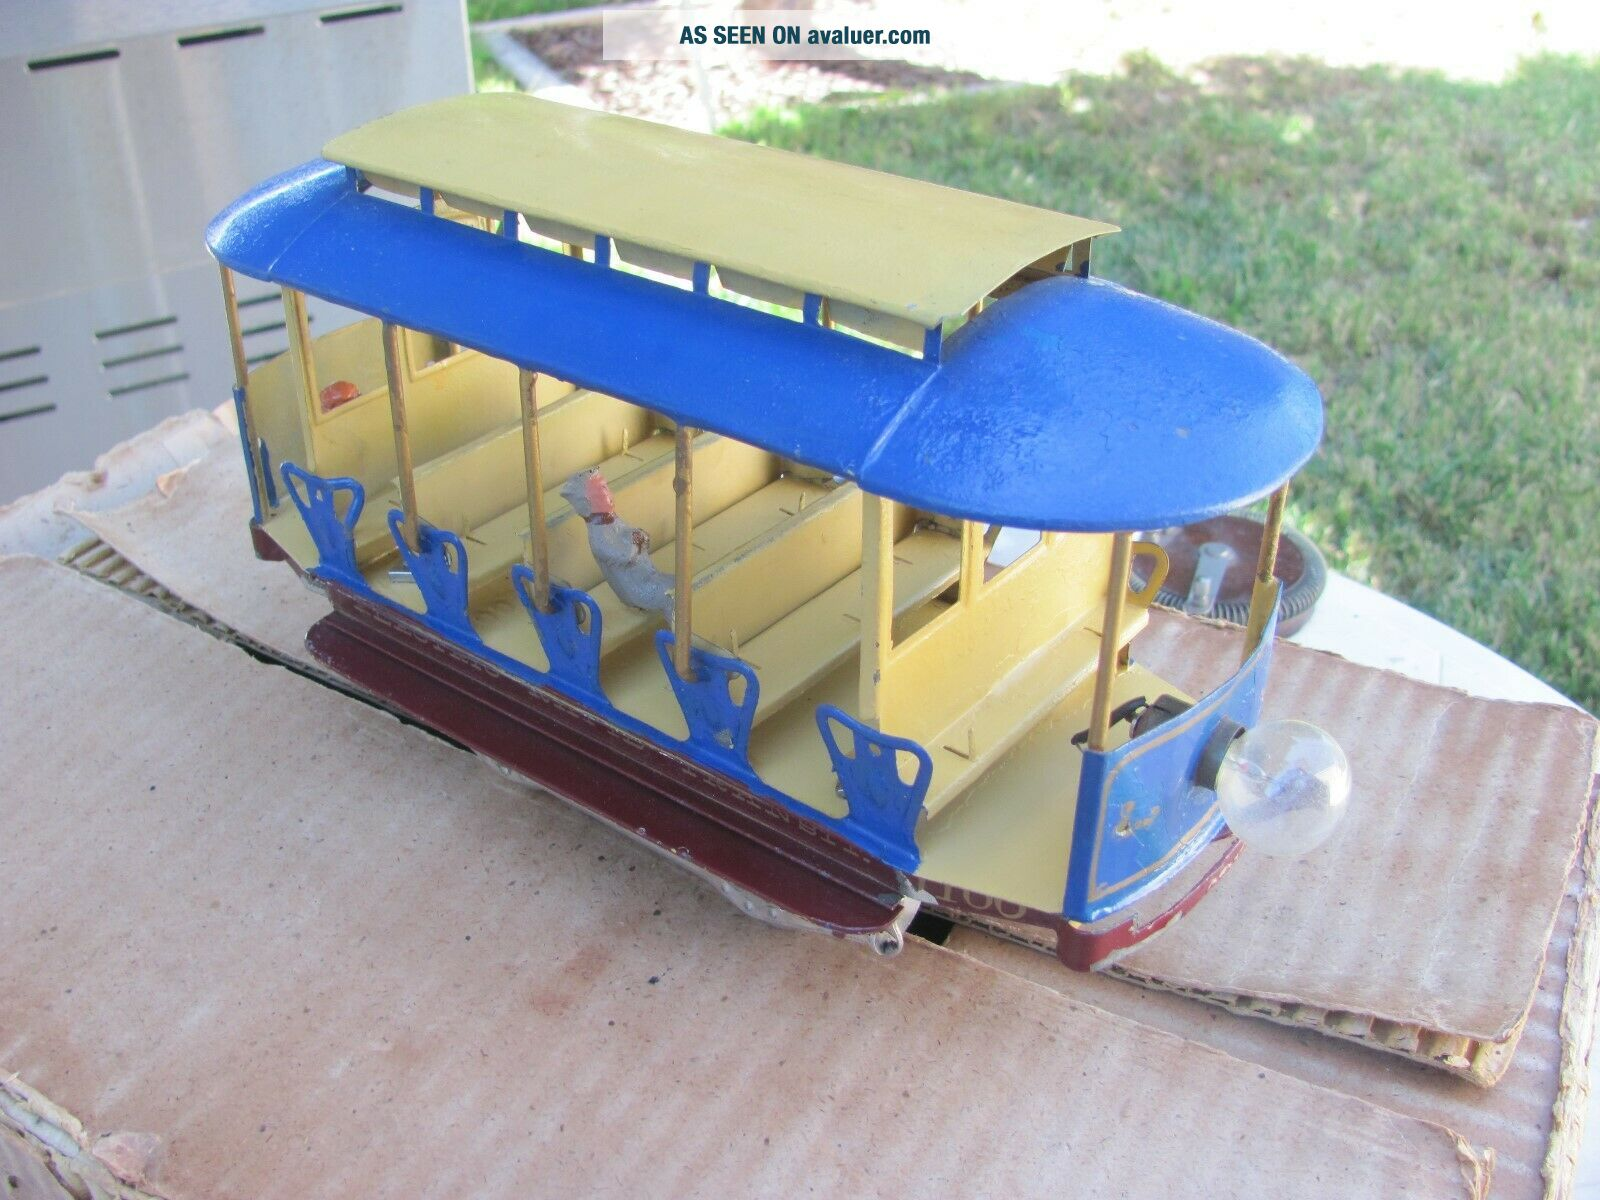 Lionel 1100 Rapid transit Summer trolley Standard and figures 1910?